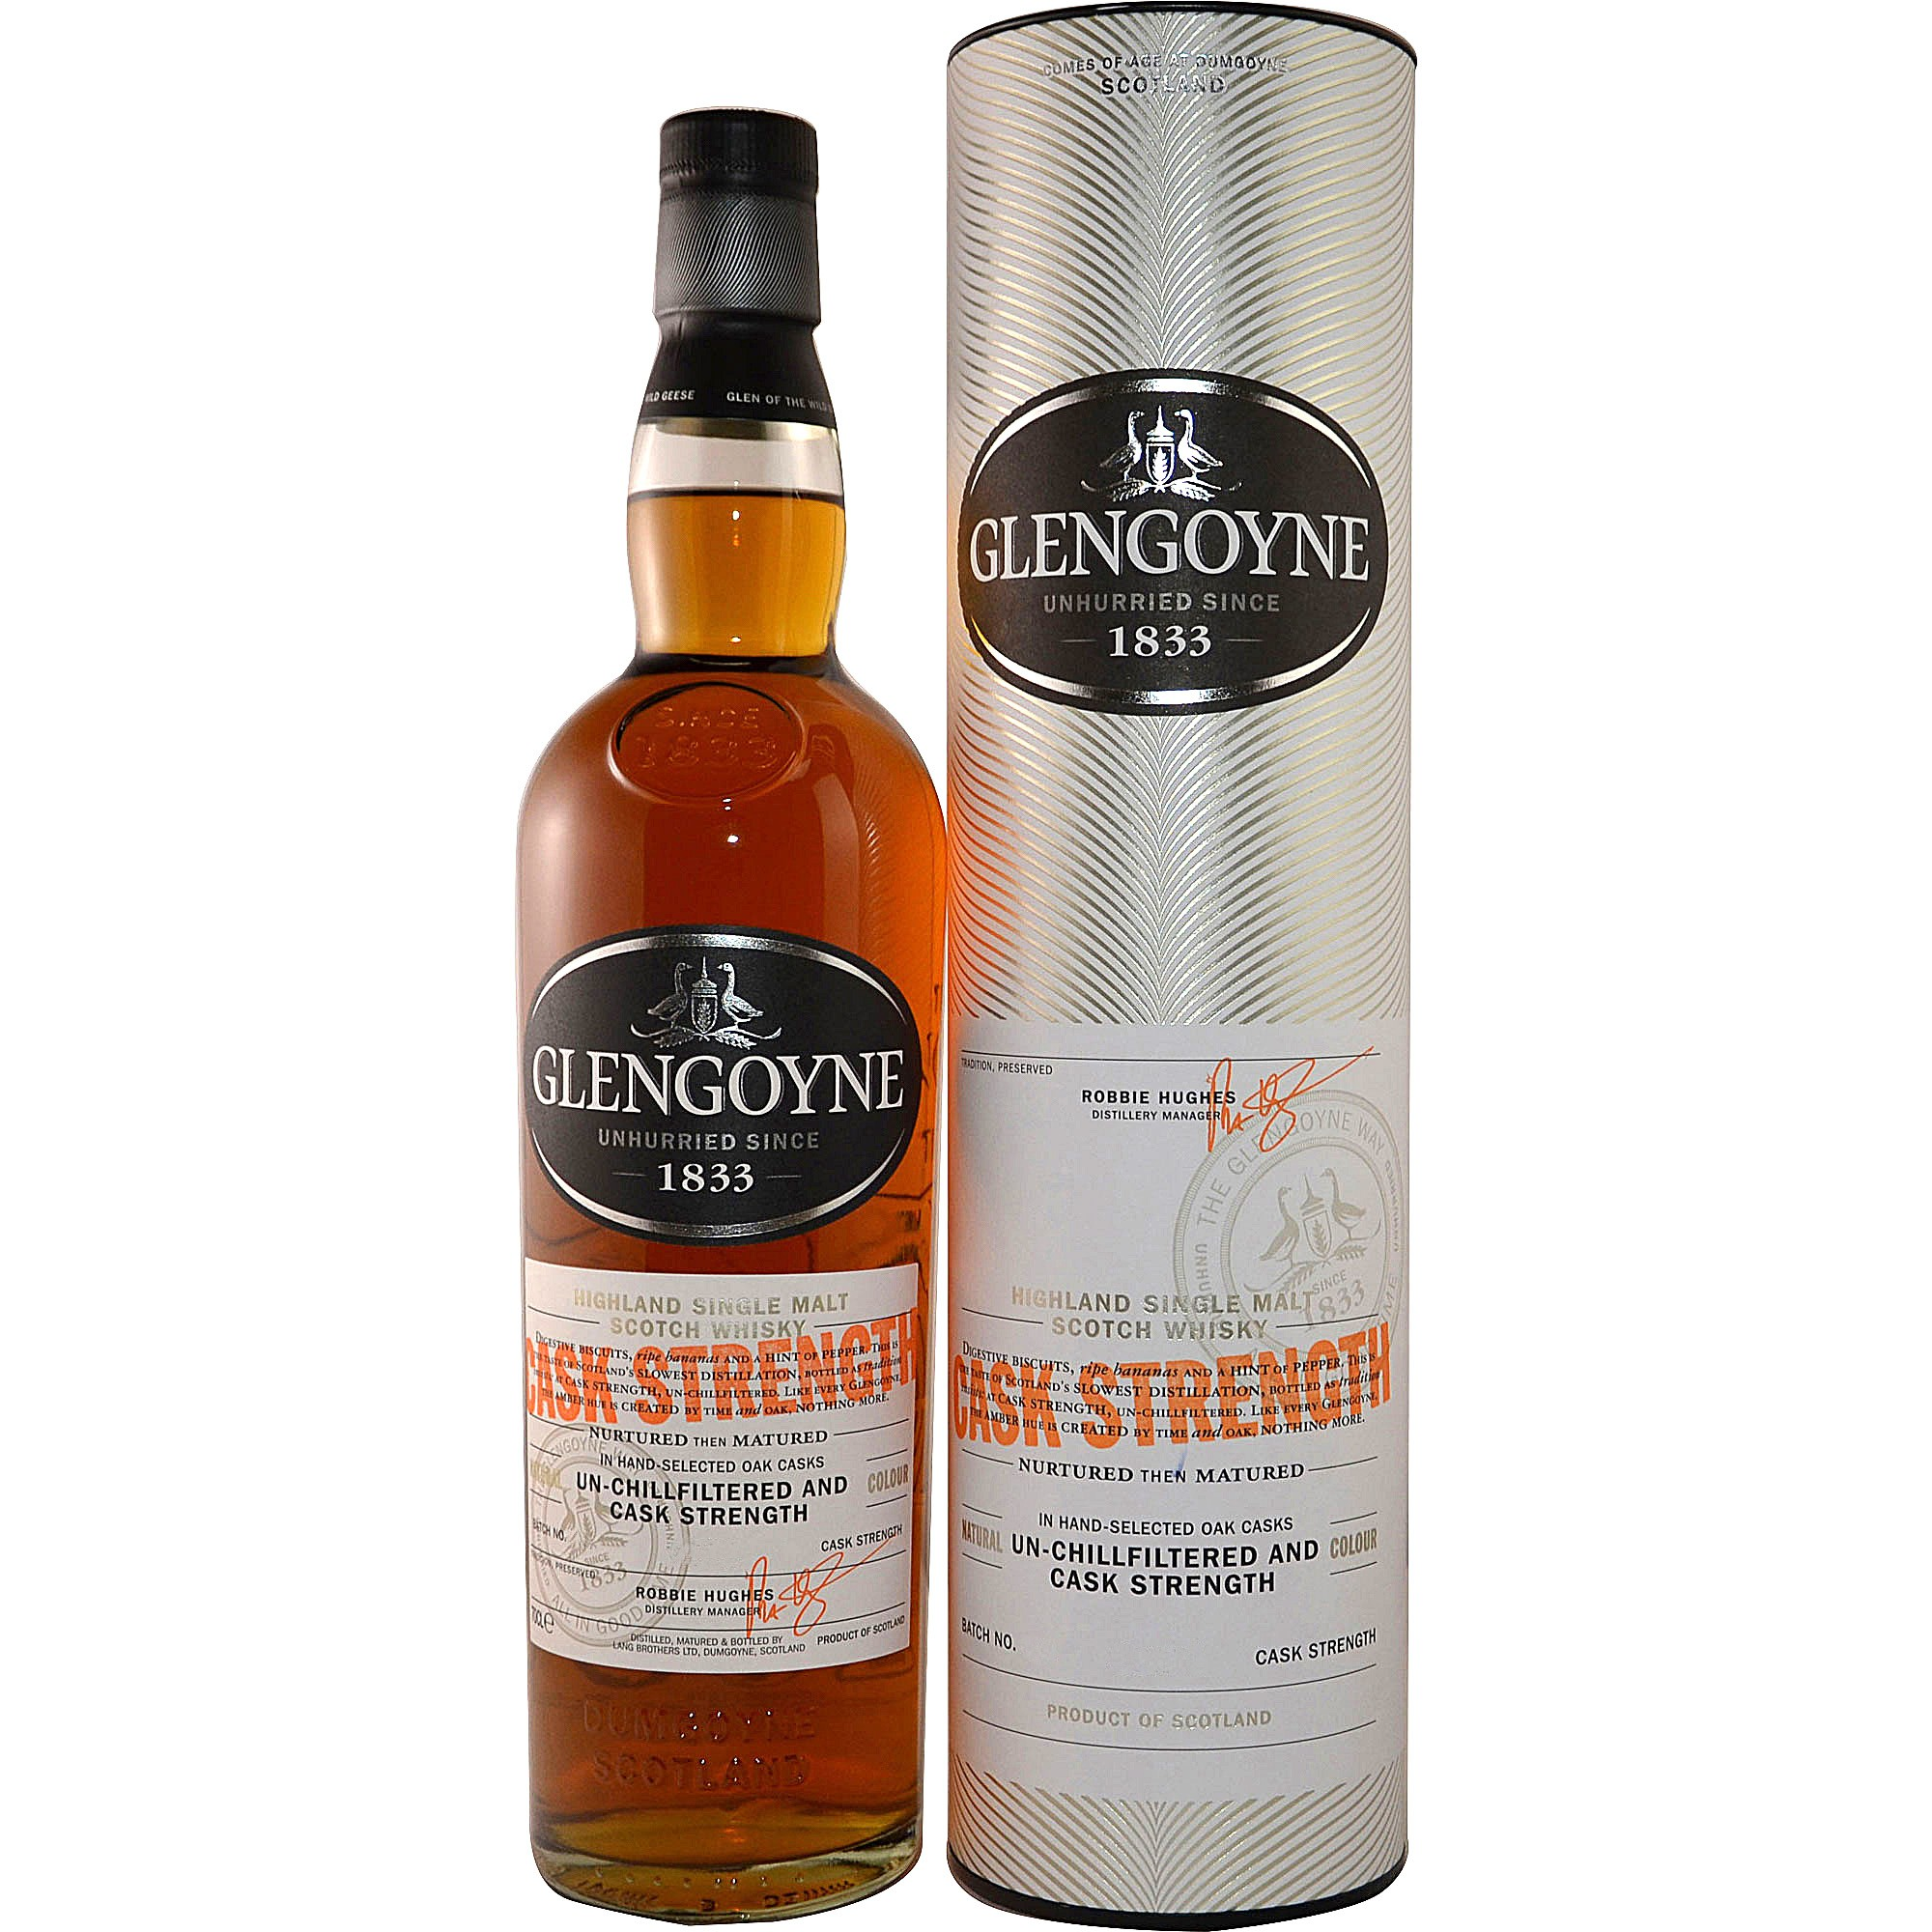 glengoyne cask strength batch 4 hier kaufen. Black Bedroom Furniture Sets. Home Design Ideas